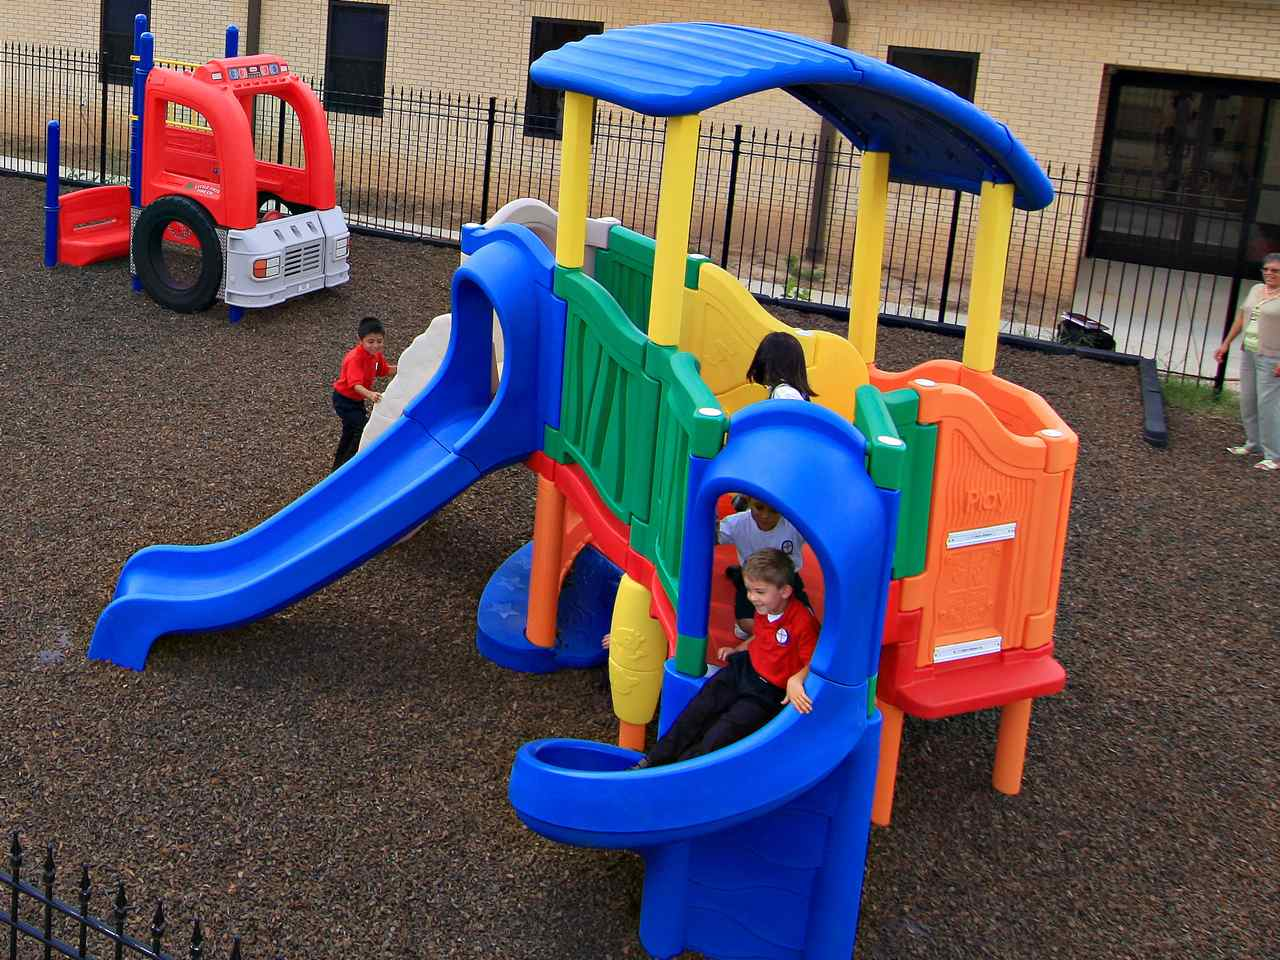 Little Tikes' products are mostly low-tech molded plastic toys aimed primarily at infants and young children, for indoor and outdoor use, including its party kitchen and turtle sandbox. The company was established by Tom G. Murdough Jr. in November 10, in Aurora, ticketfinder.gaarters: Hudson, Ohio, U.S.